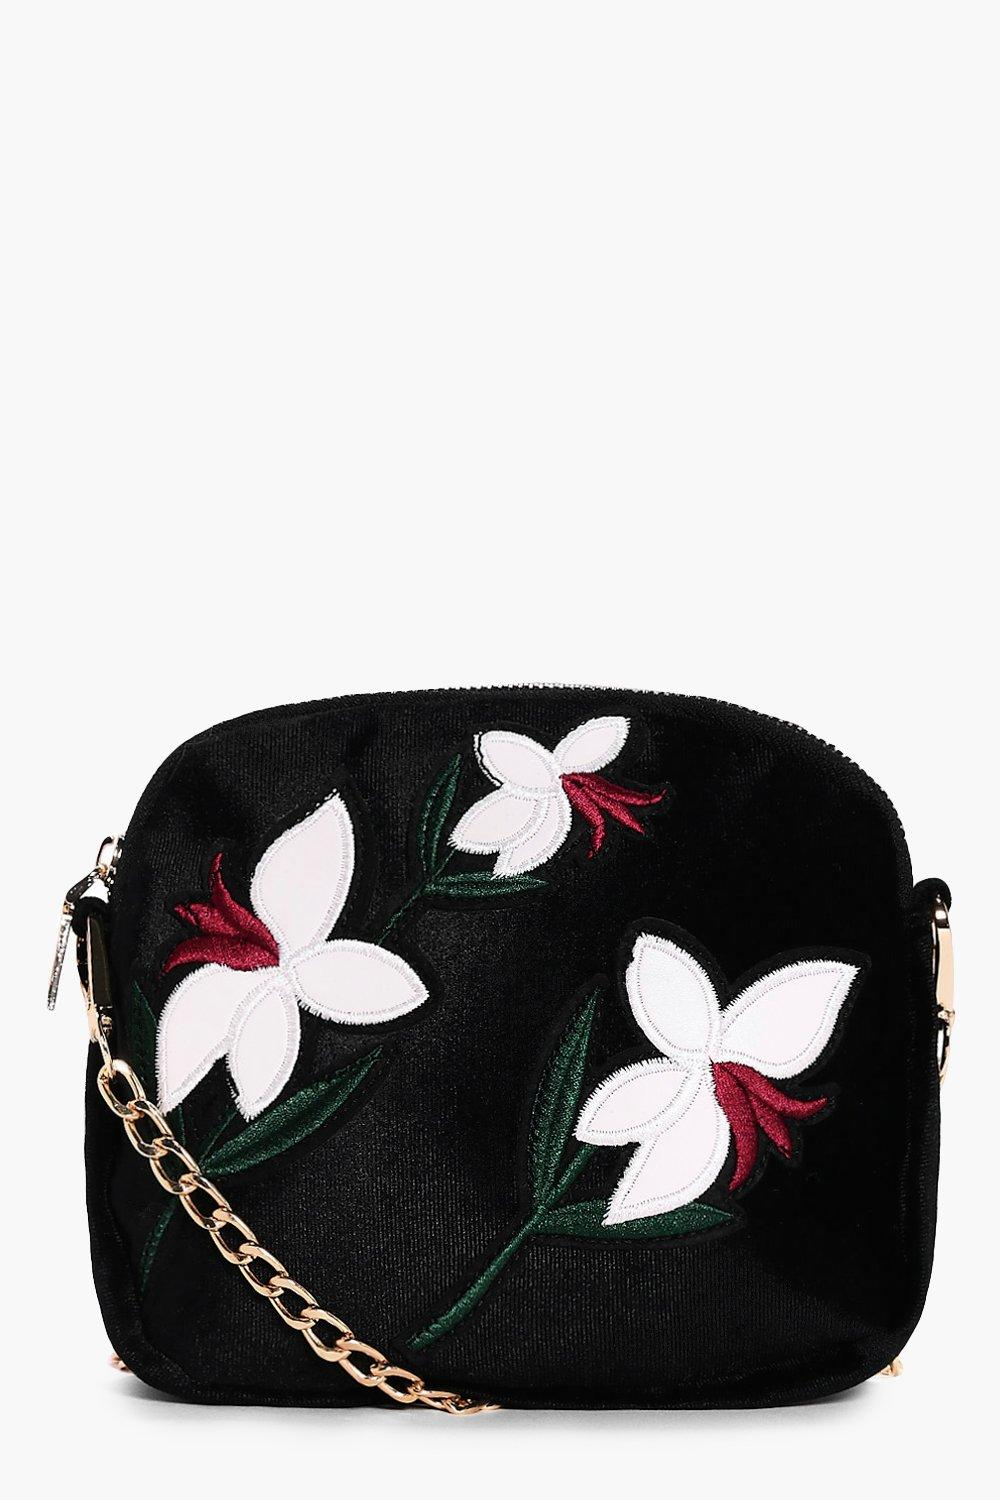 Embroidered Cross Body Bag - white - Maisie Embroi